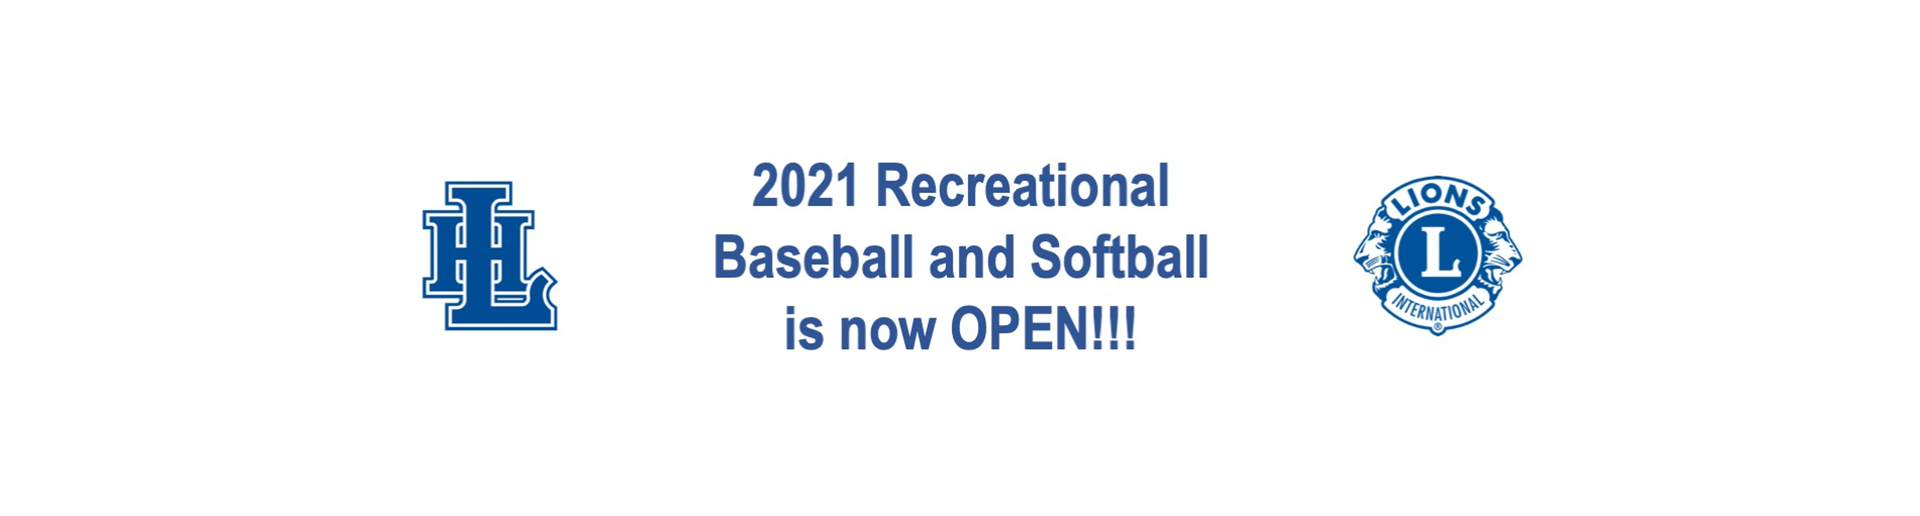 REGISTER NOW FOR SPRING LEAGUES!!!